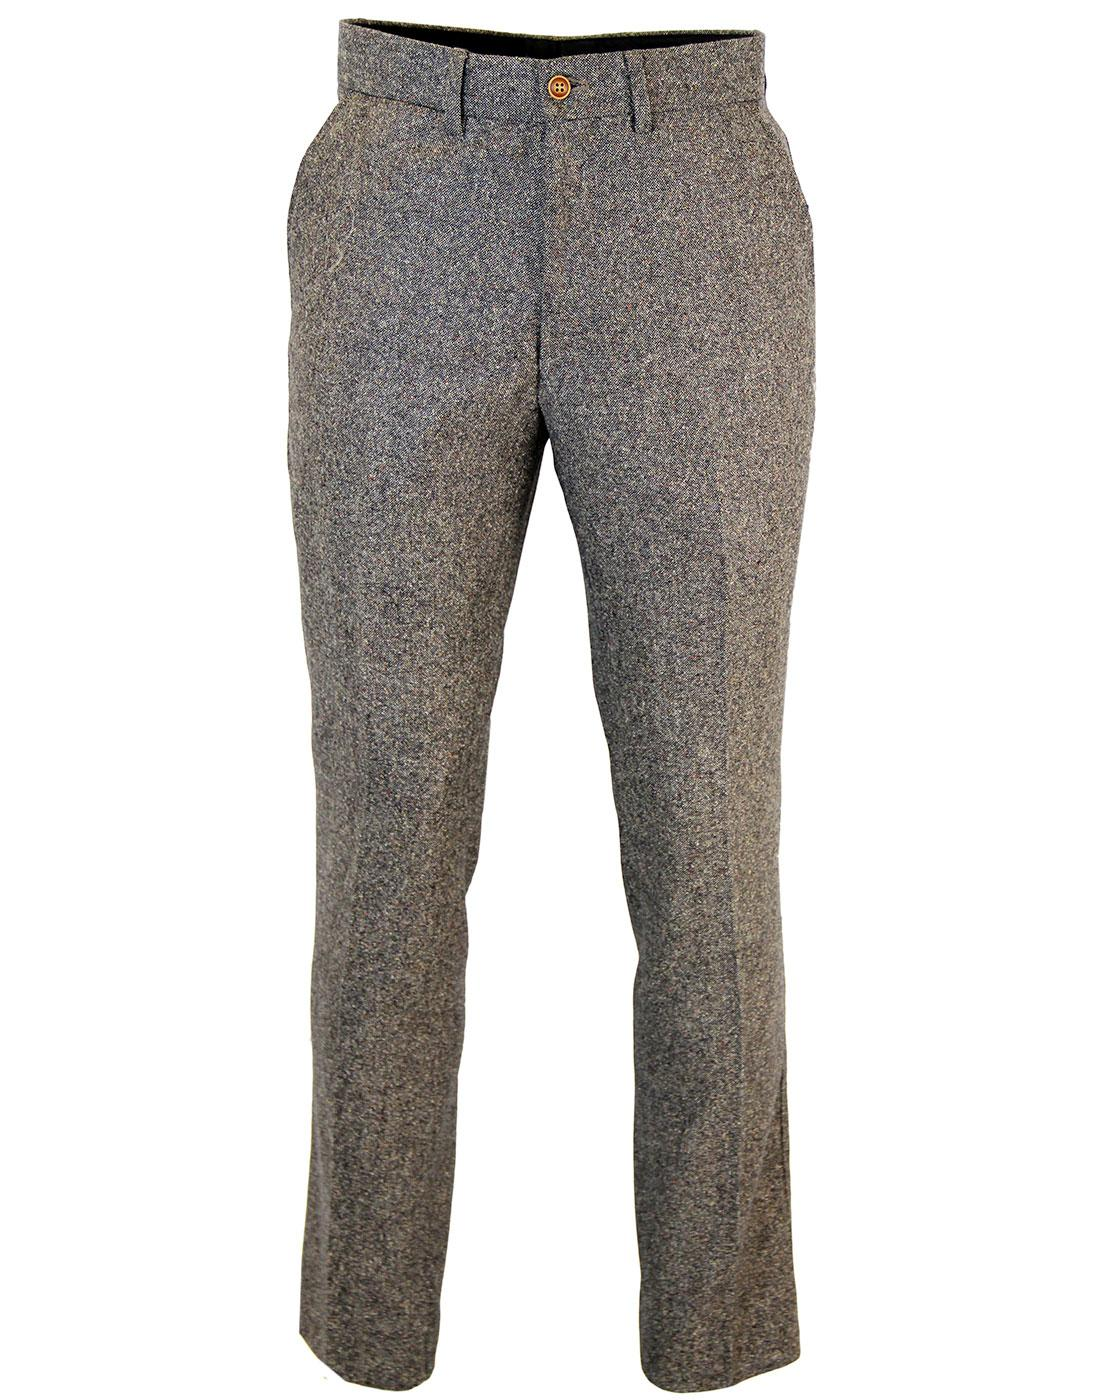 GIBSON LONDON Mod Donegal Flat Front Trousers (T)